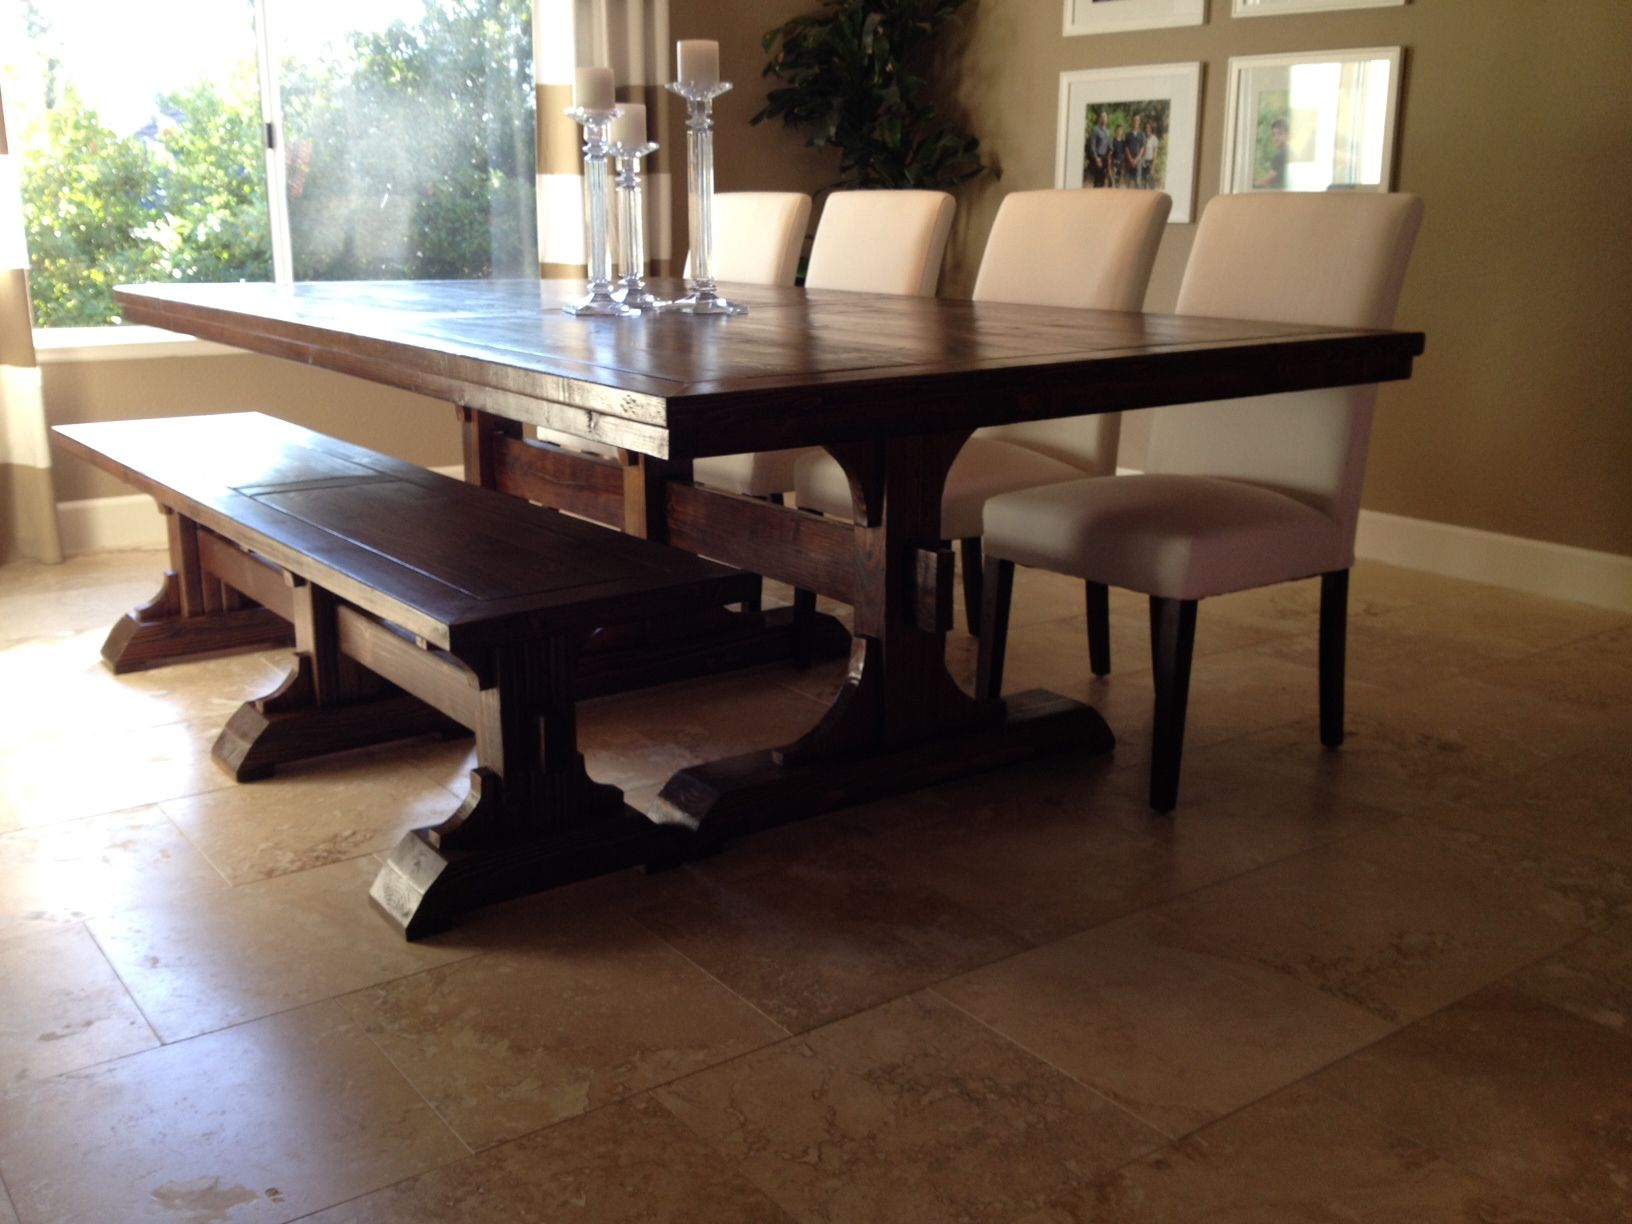 Triple Pedestal Farmhouse Table and Bench Do It Yourself Home Projects from Ana White